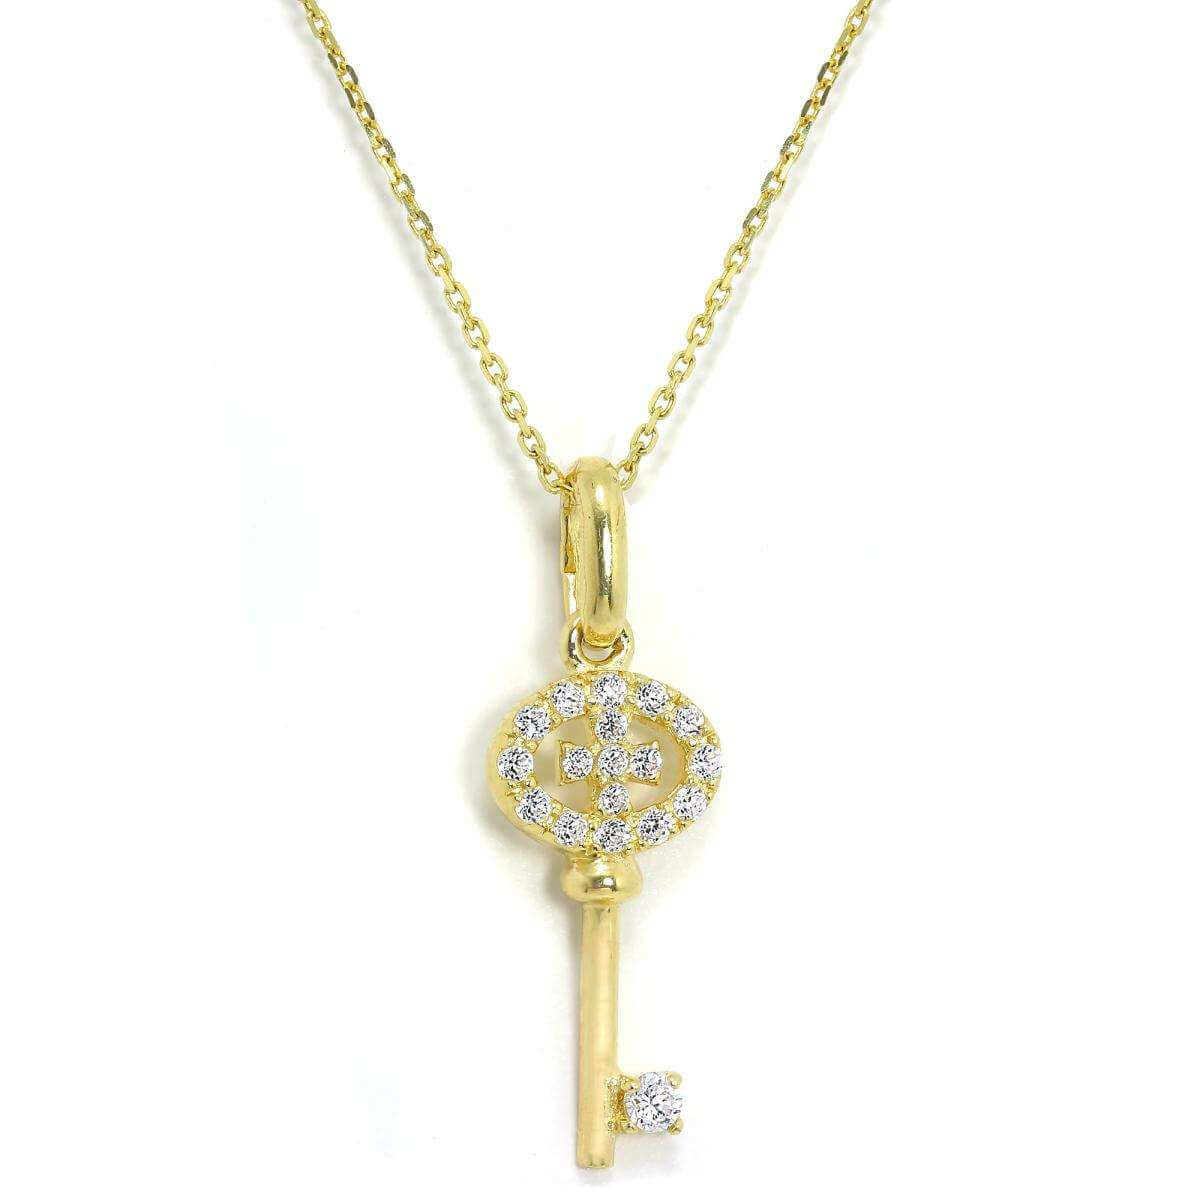 9ct Yellow Gold & CZ Crystal Encrusted Key Pendant on 16 - 20 Inch Chain